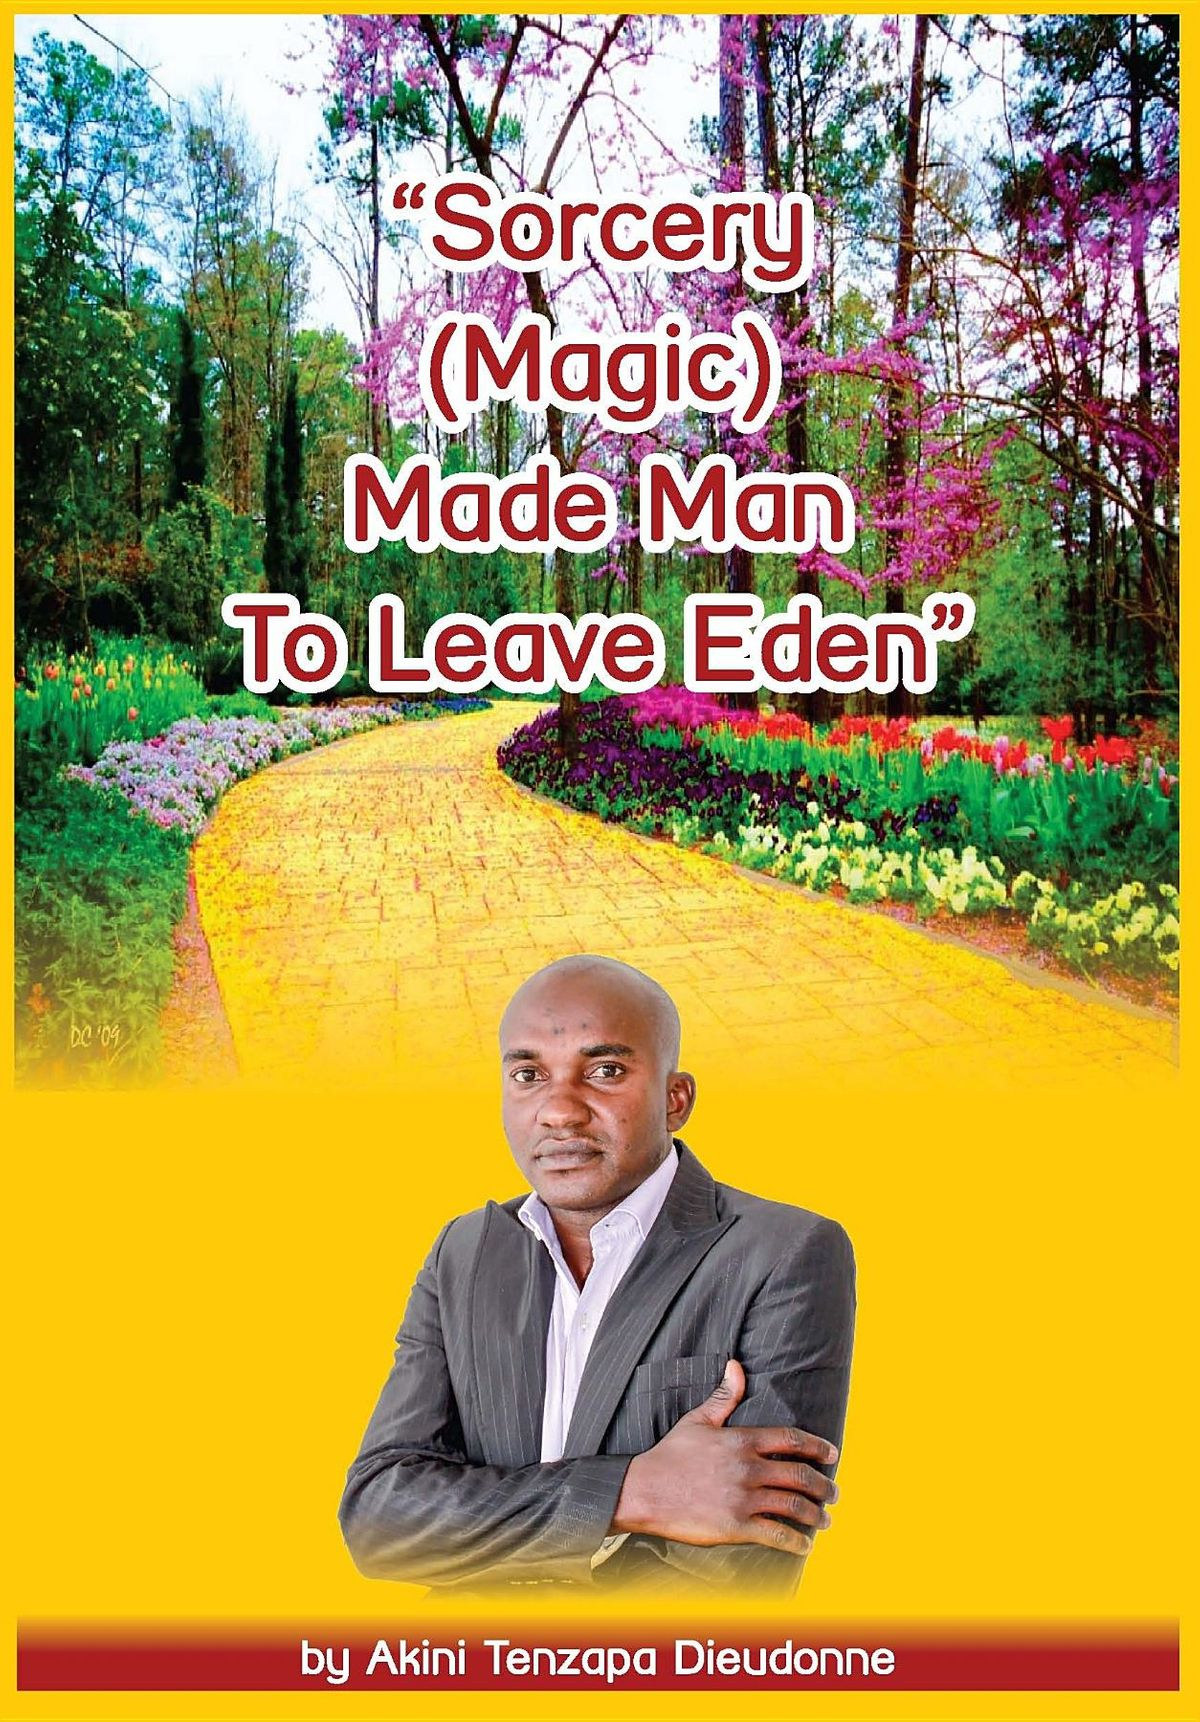 Sorcery(magic)Made Man To Leave Eden by Akini Tenzapa Dieudonne, ISBN: 9780620806725